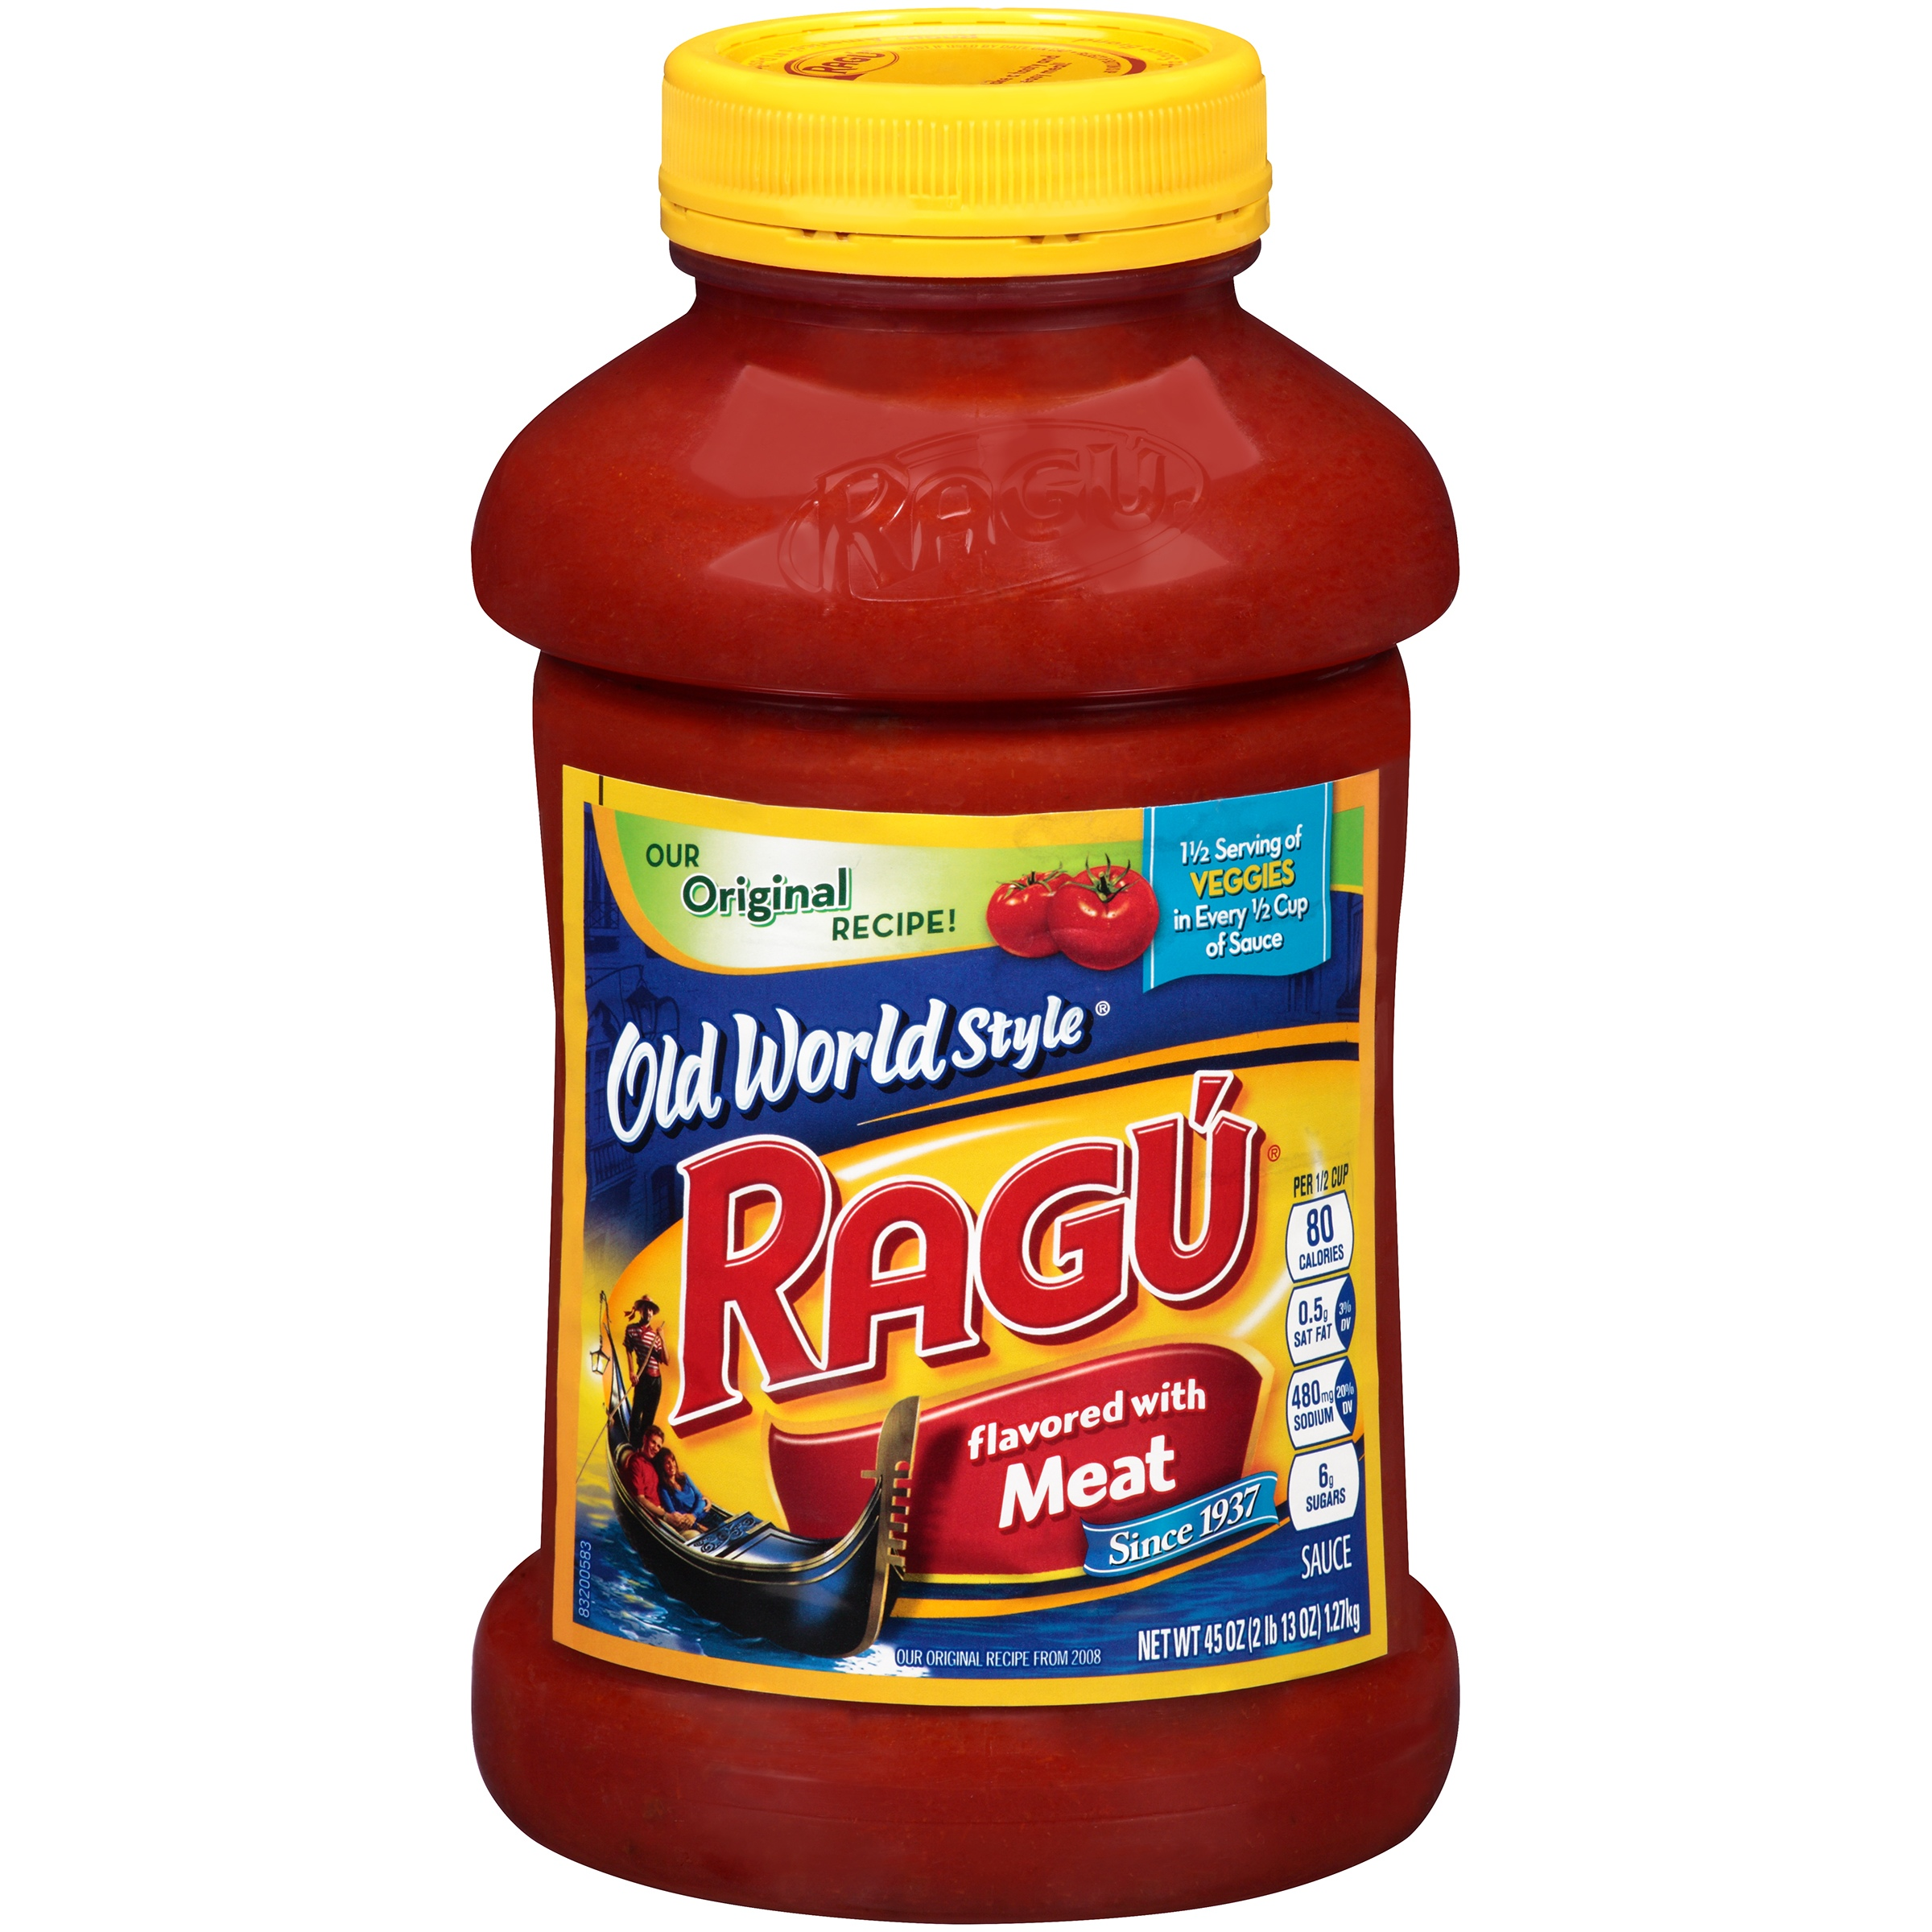 Ragu Old World Style Traditional Meat Sauce 45 Oz Sc 1 St Image Number 21 Of